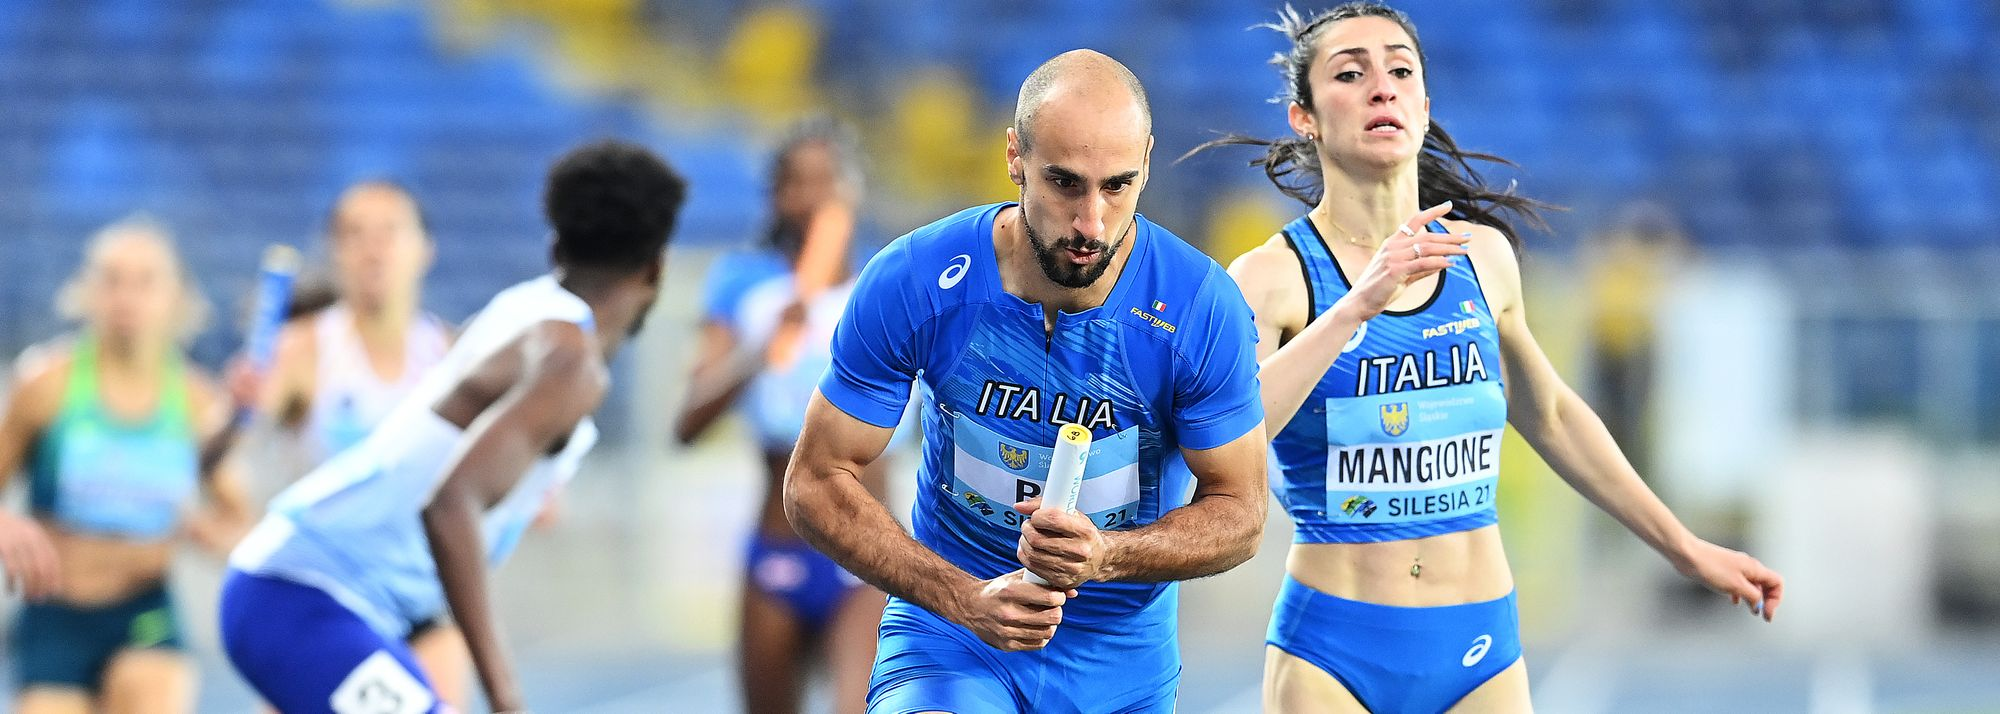 It wouldn't be the relays without a few thrills and spills and action on the second day of the World Athletics Relays Silesia 21 didn't disappoint, with wins for Italy, Cuba, South Africa, hosts Poland, Germany and the Netherlands on Sunday (2).